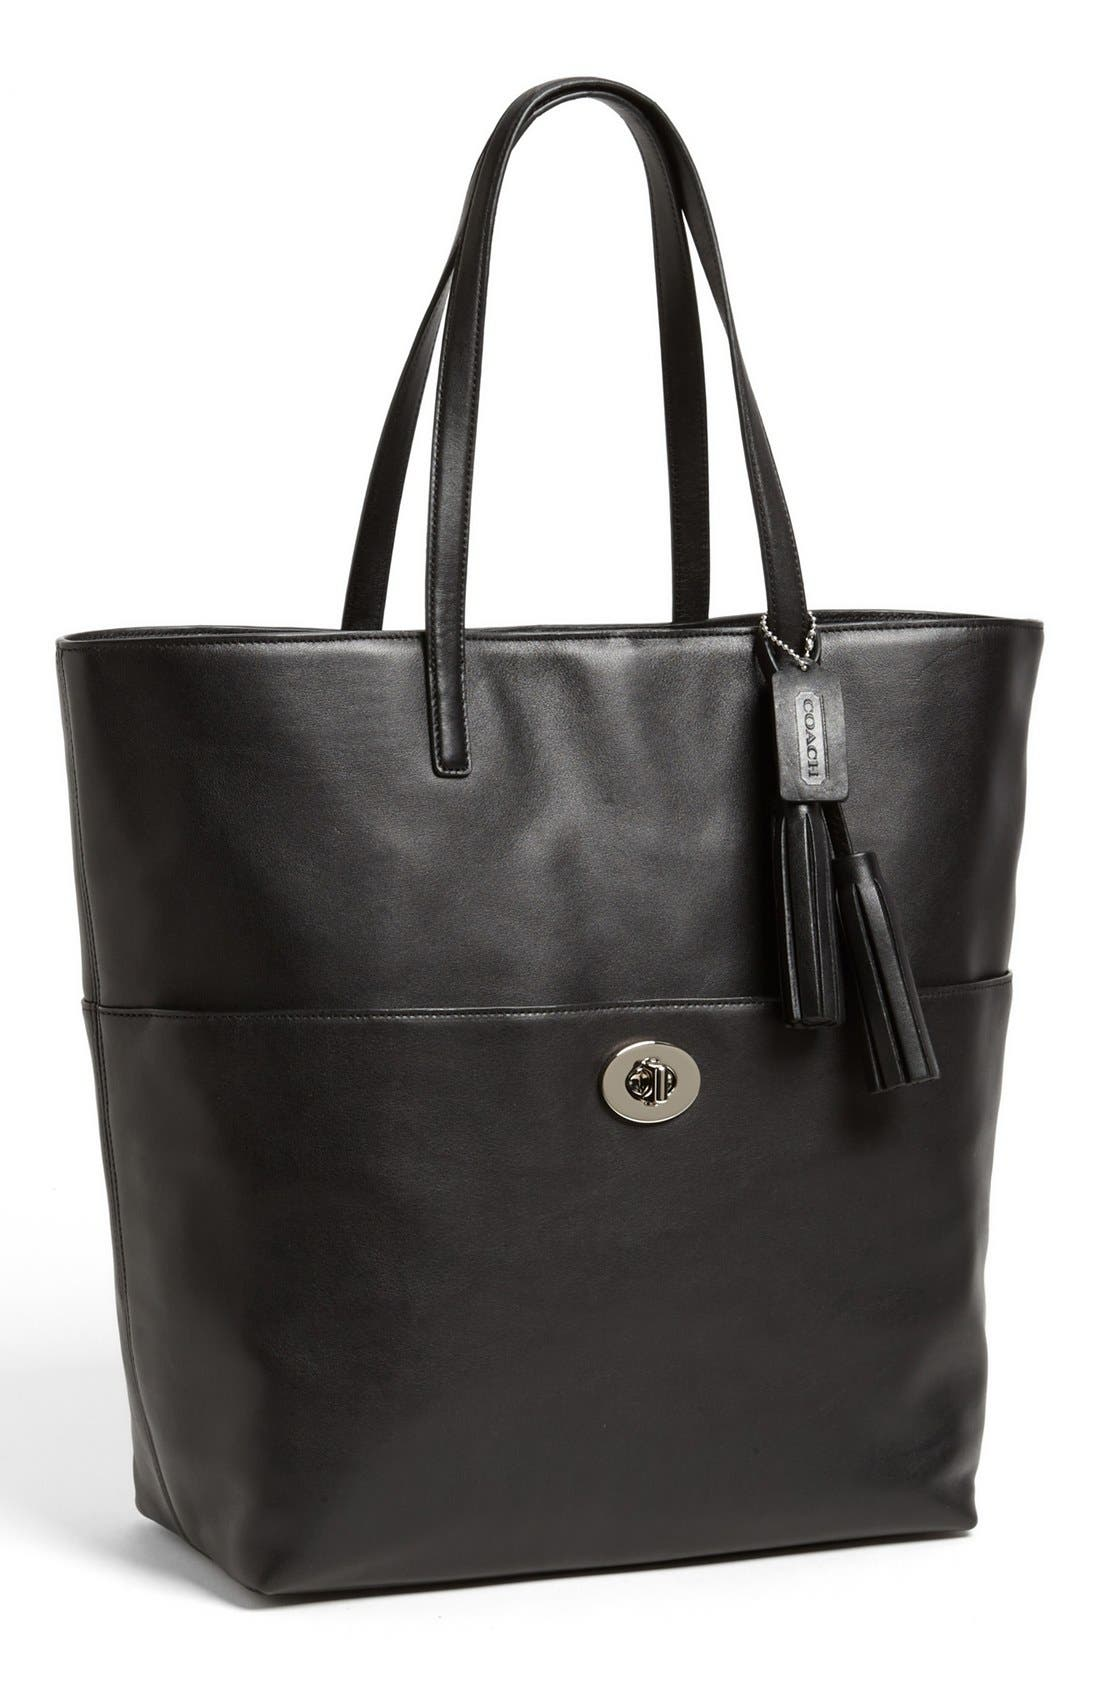 Main Image - COACH 'Legacy' Leather Tote